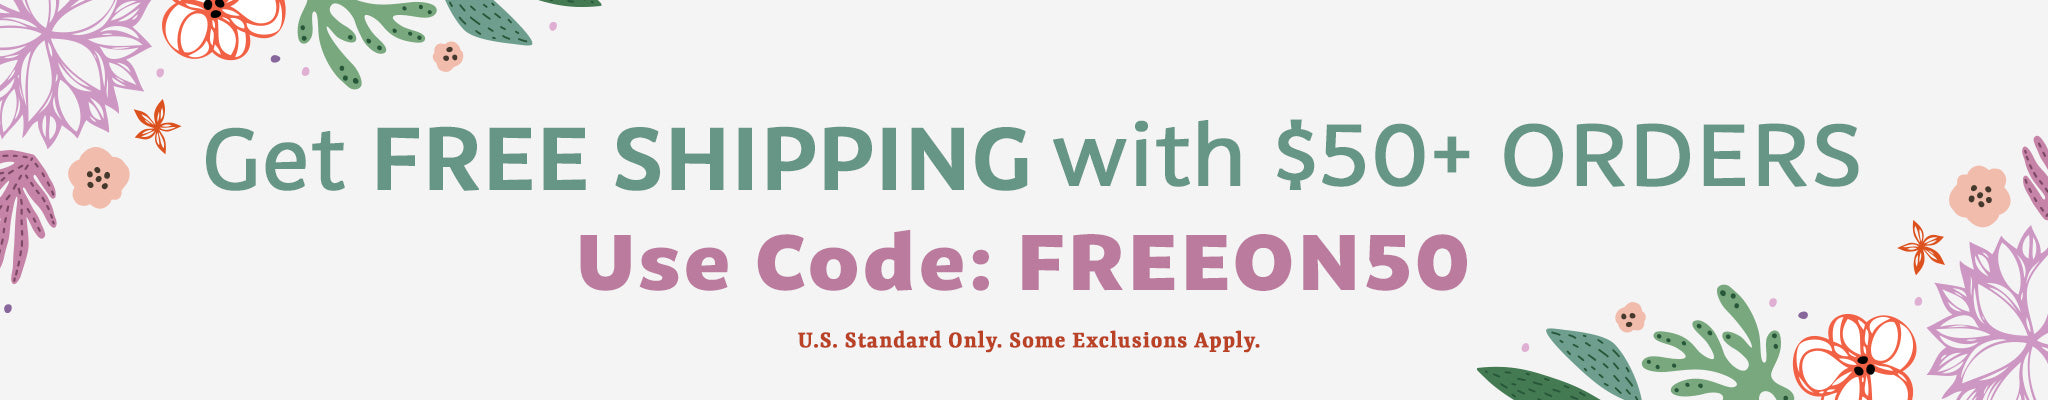 Free Shipping on $50 Orders | FREEON50 | U.S. Standard Shipping Only